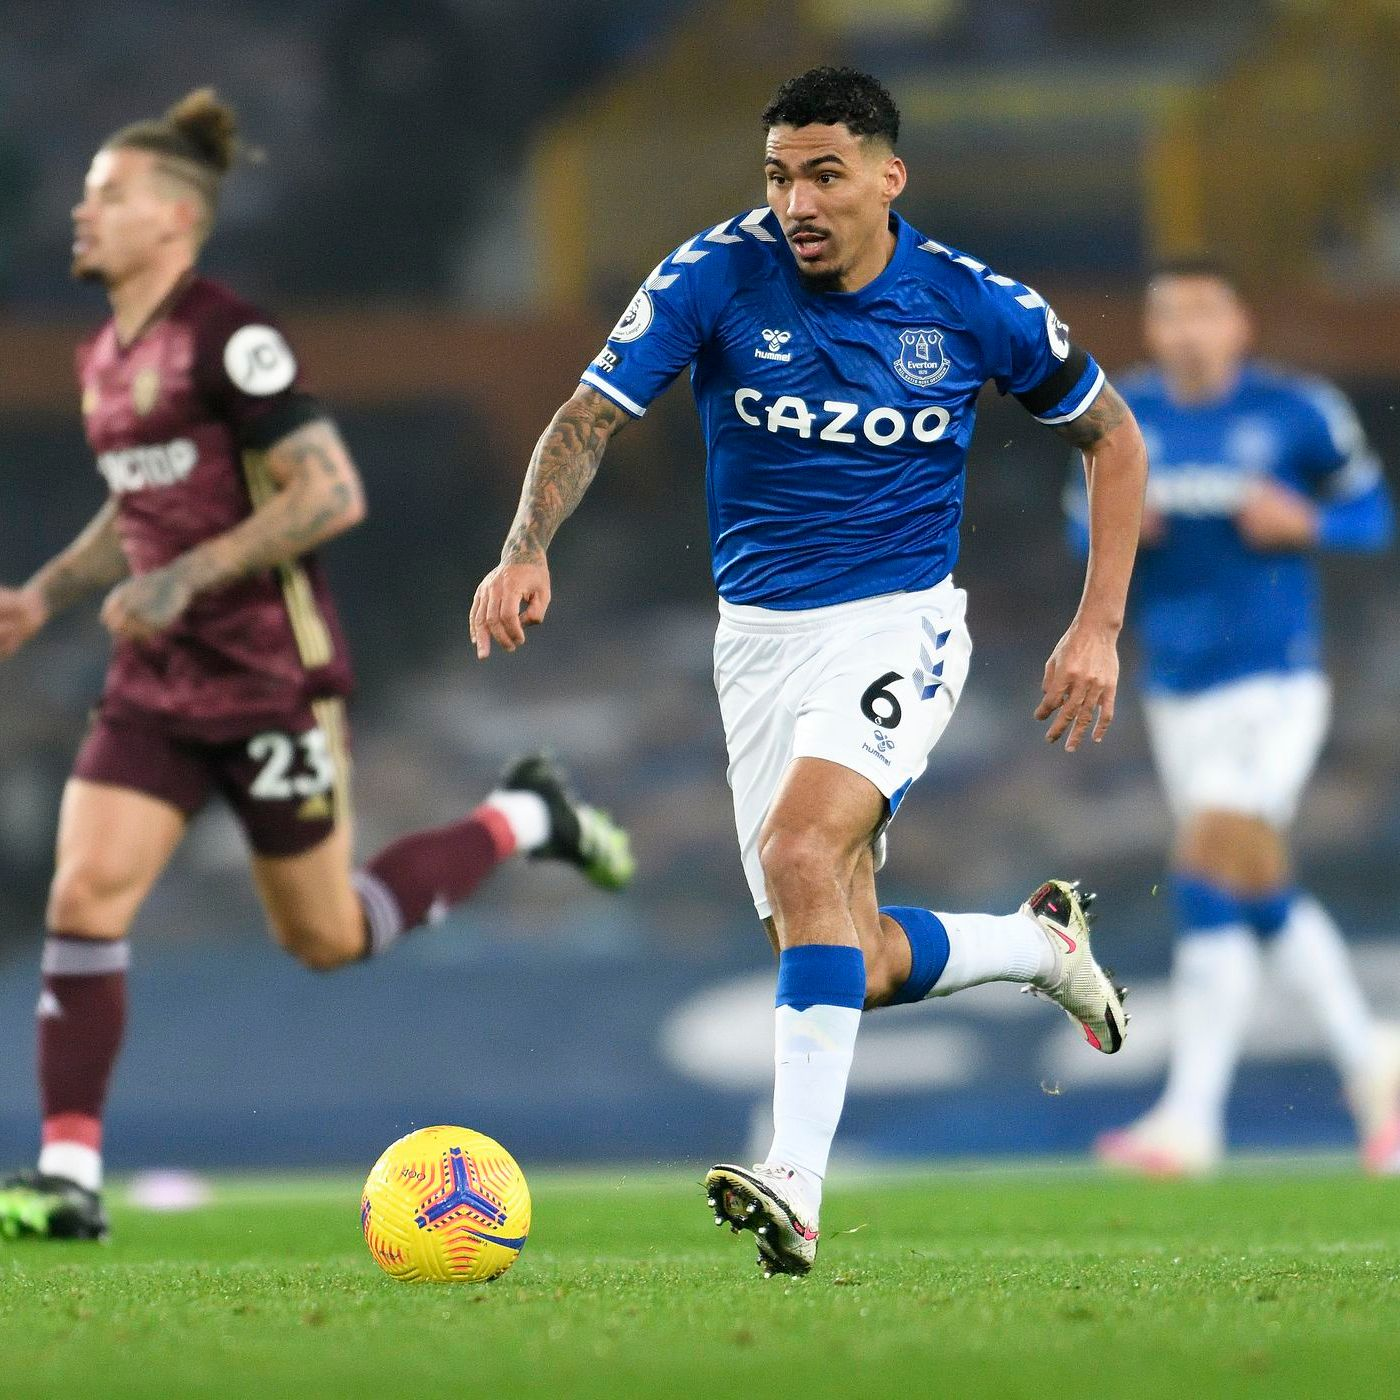 Royal Blue: Wing-back worries, a new role for Allan and Everton's loss to Leeds discussed